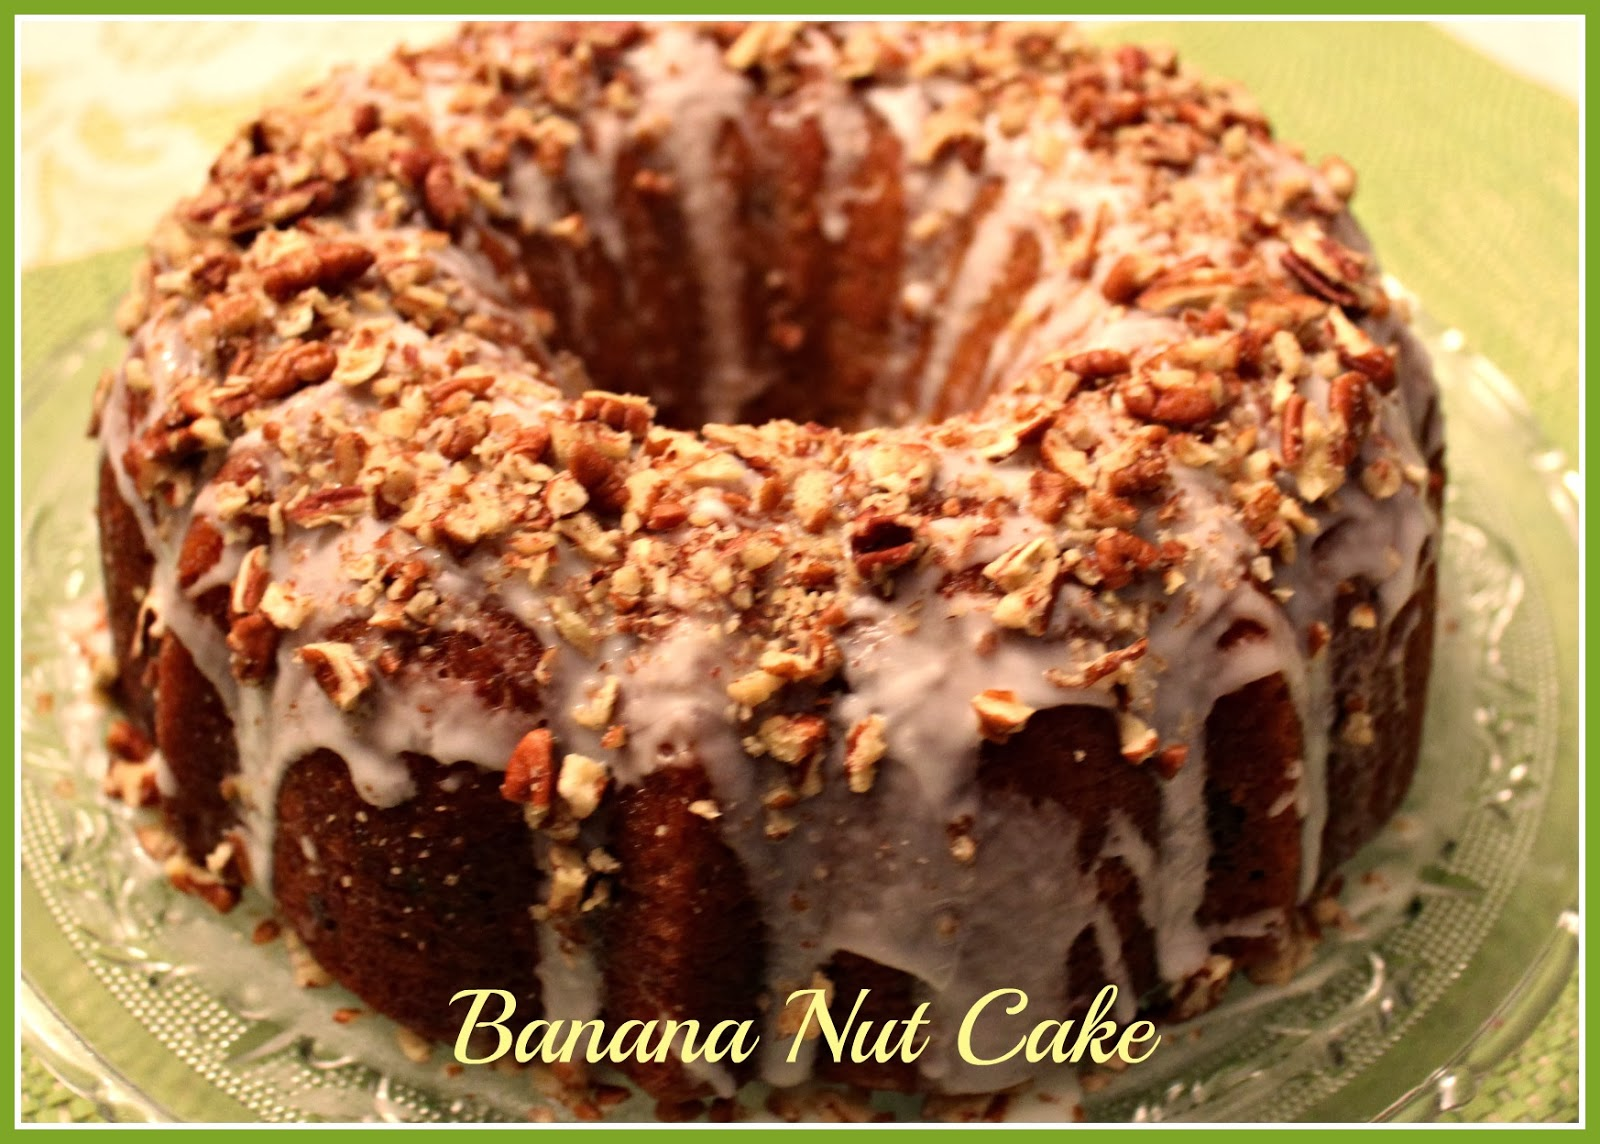 Make Banana Nut Pound Cake